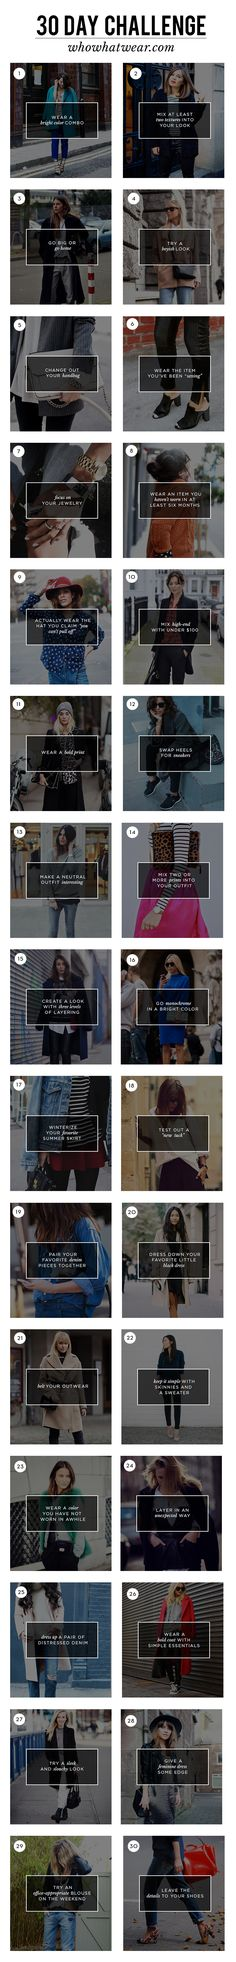 Who What Wear's 30-Day Wardrobe Challenge